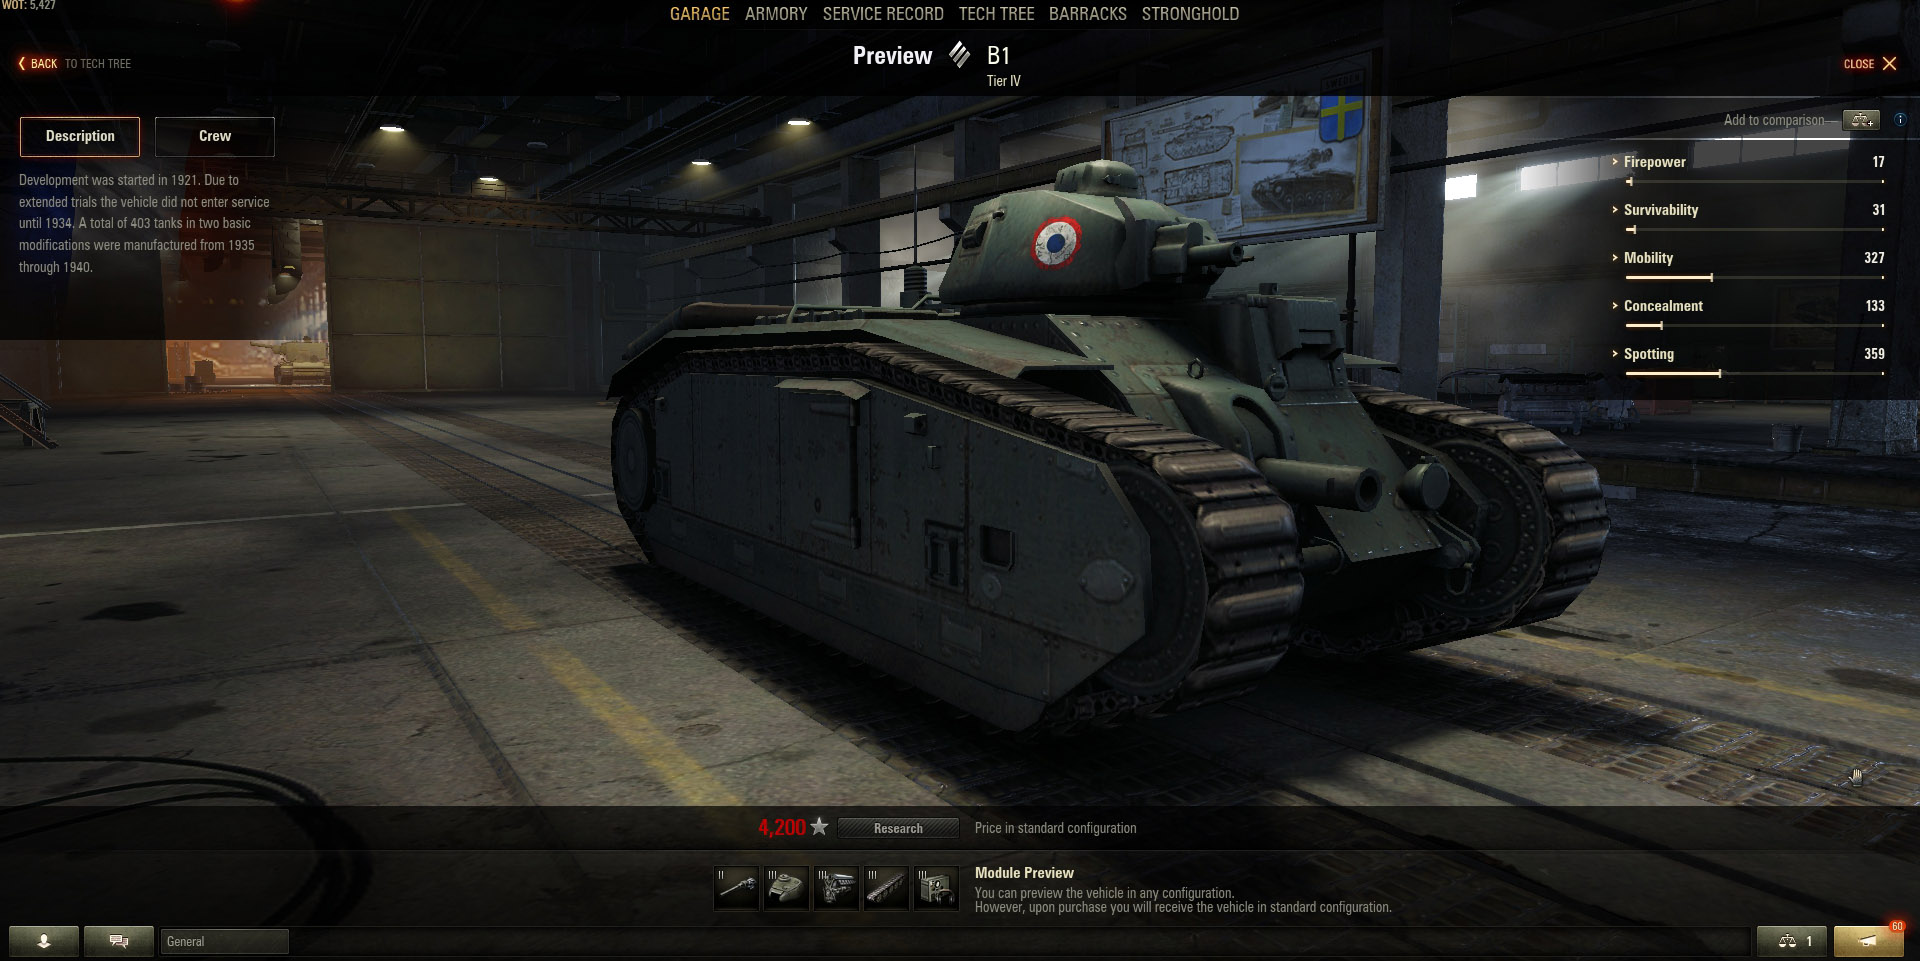 There's not a lot of Tier 4 Heavy tanks to choose from, but the B1 will be a treat to use.